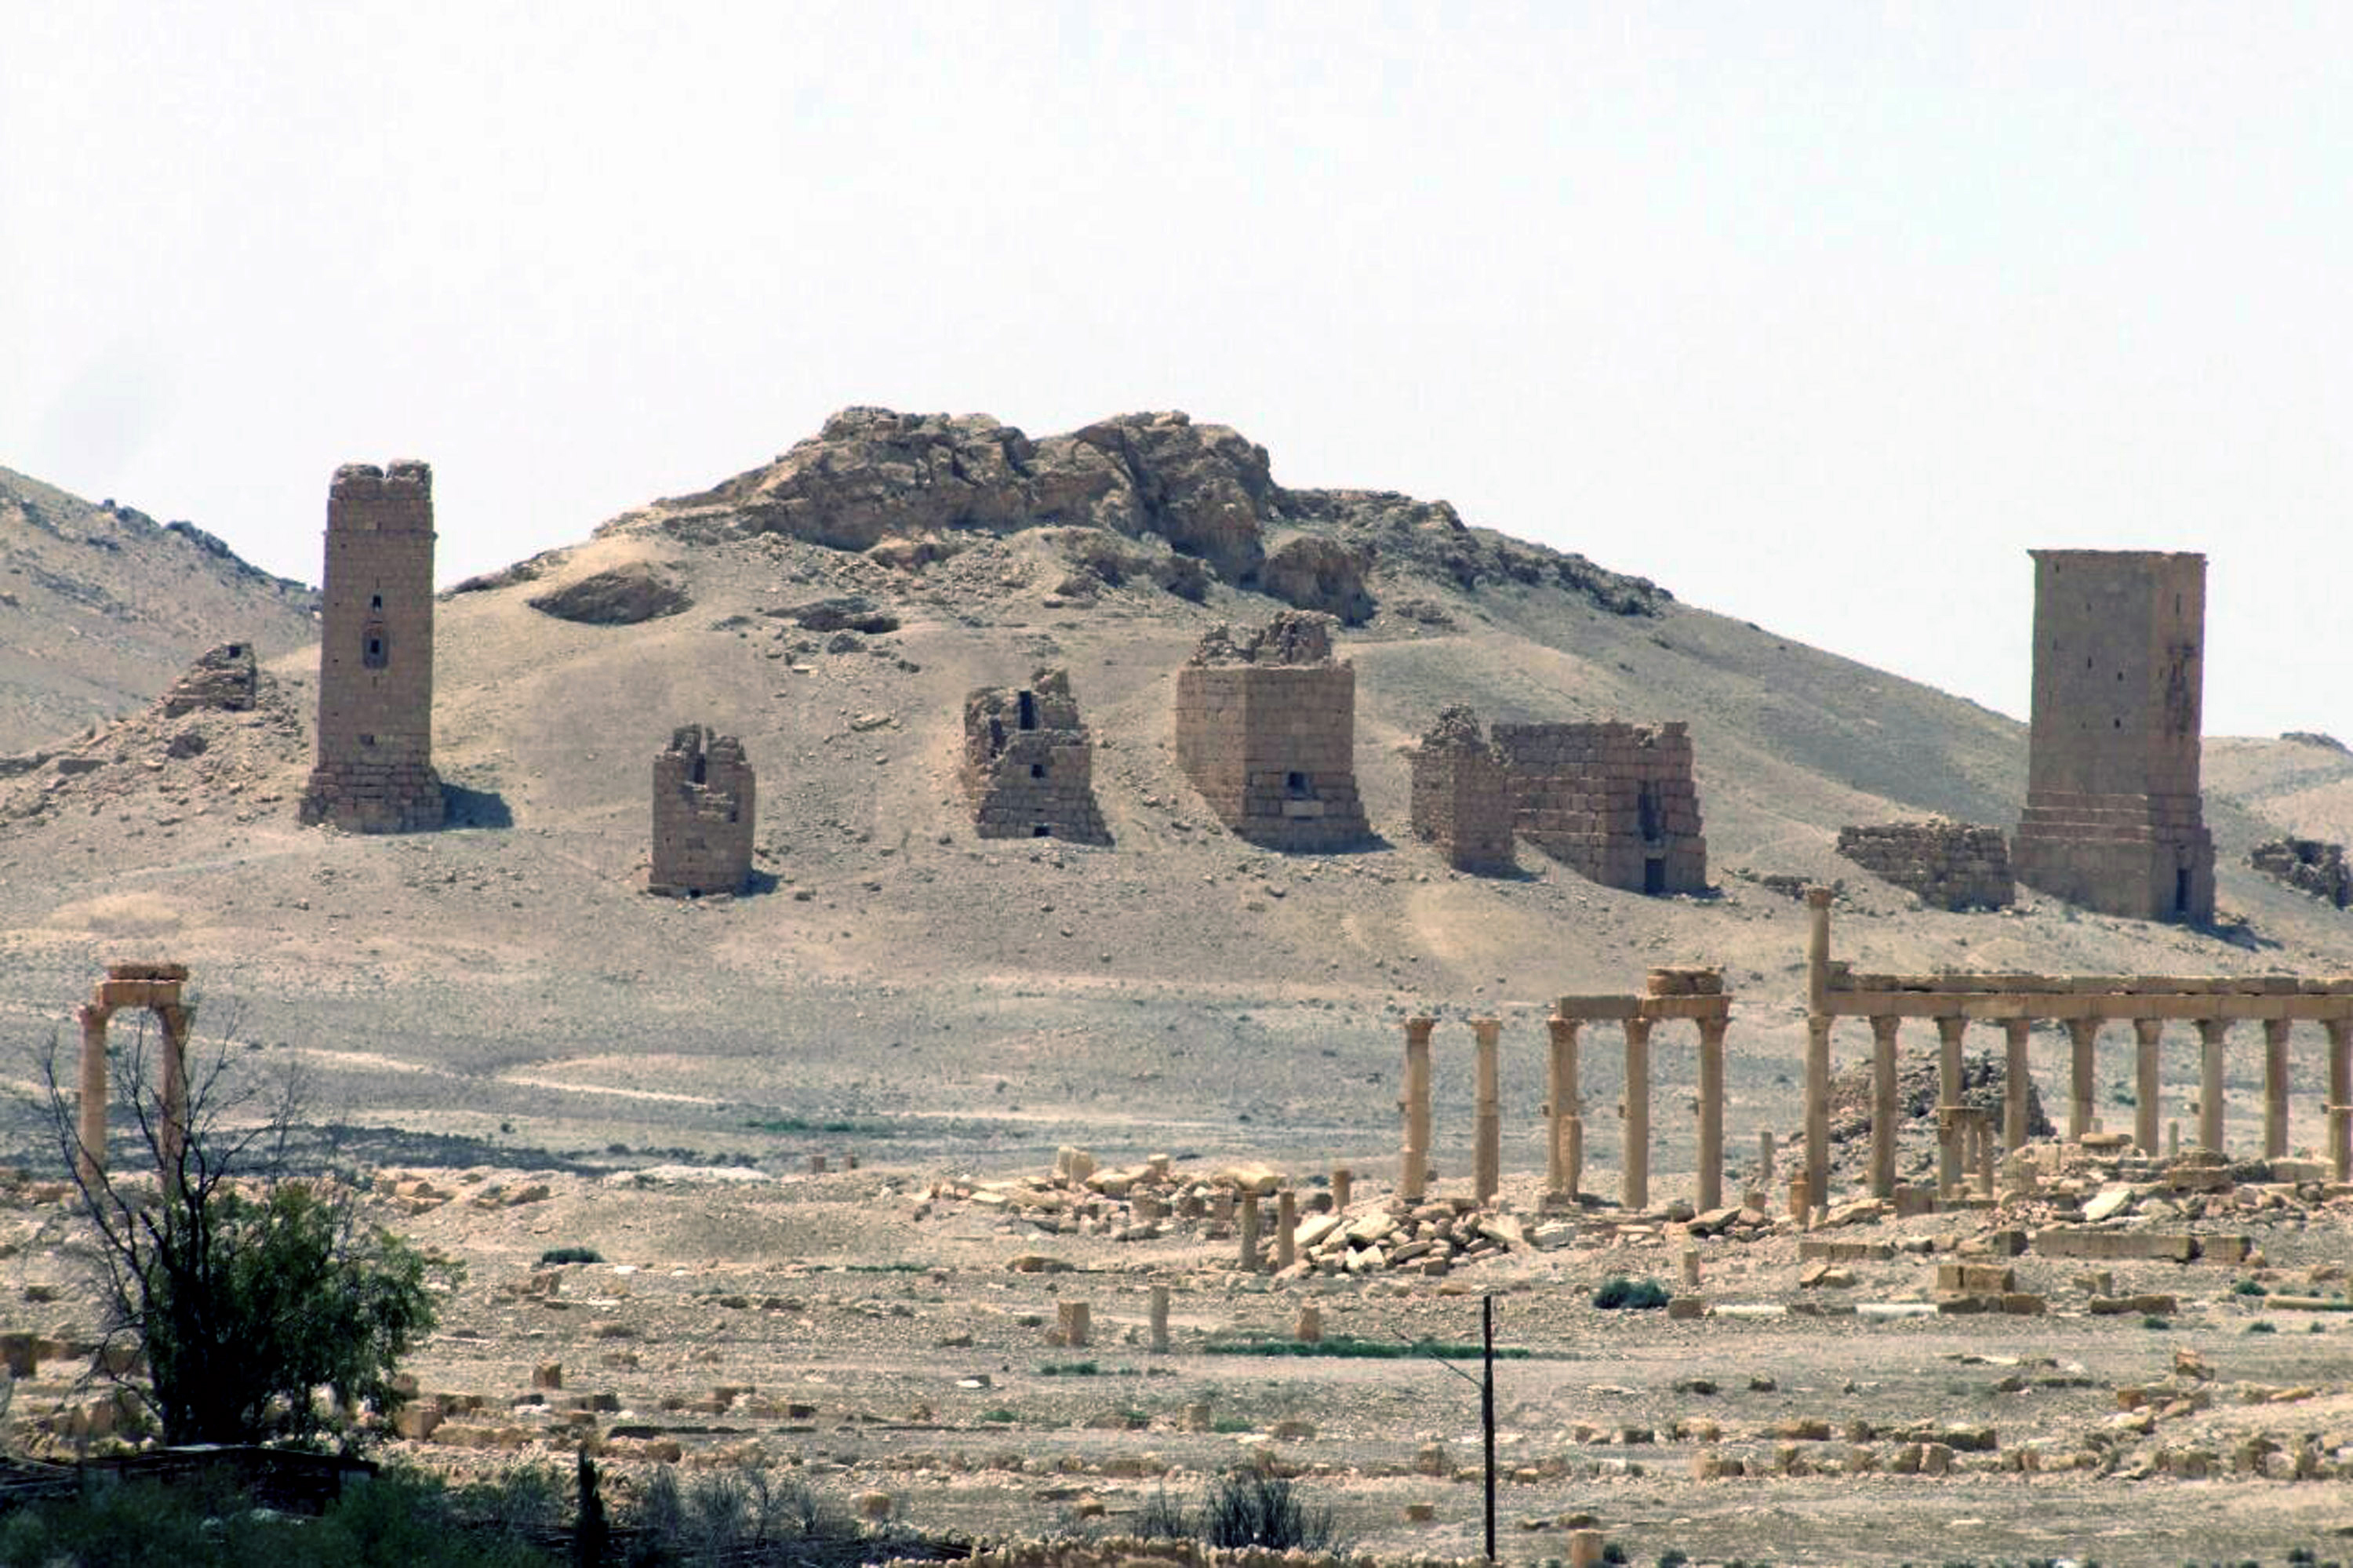 A May 17, 2015 file photo released by the Syrian official news agency SANA, shows a general view of the ancient Roman city of Palmyra, northeast of Damascus. Syrian activists say Islamic State militants have destroyed a nearly 2,000-year-old arch in Palmyra, the latest victim in the group's campaign to destroy historic sites across the territory it controls in Iraq and Syria. (AP)